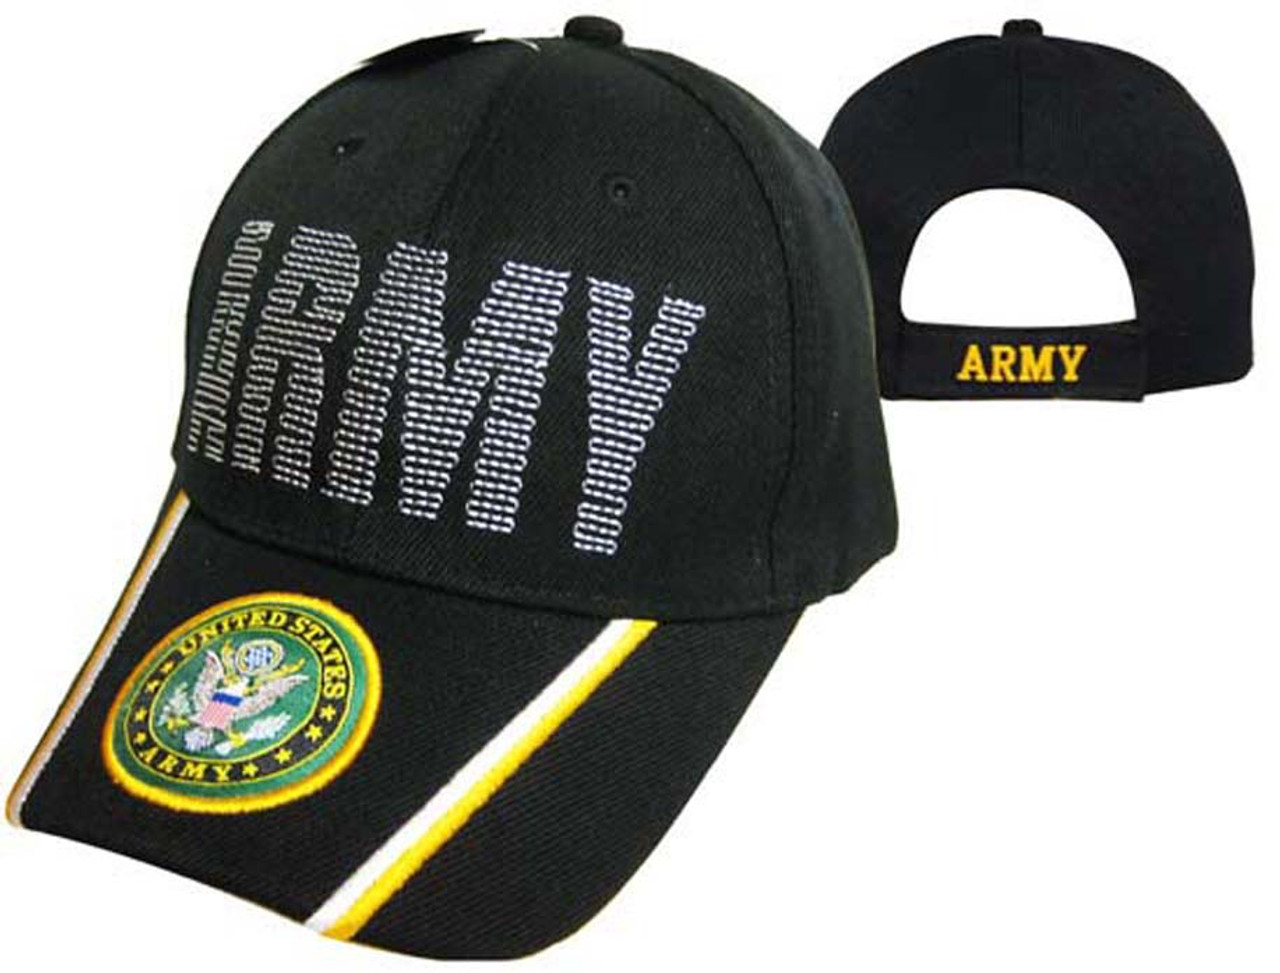 3f8cf6293ac US ARMY OFFICIALLY LICENSED WITH SEAL   EMBROIDERED Baseball Hat Baseball  cap